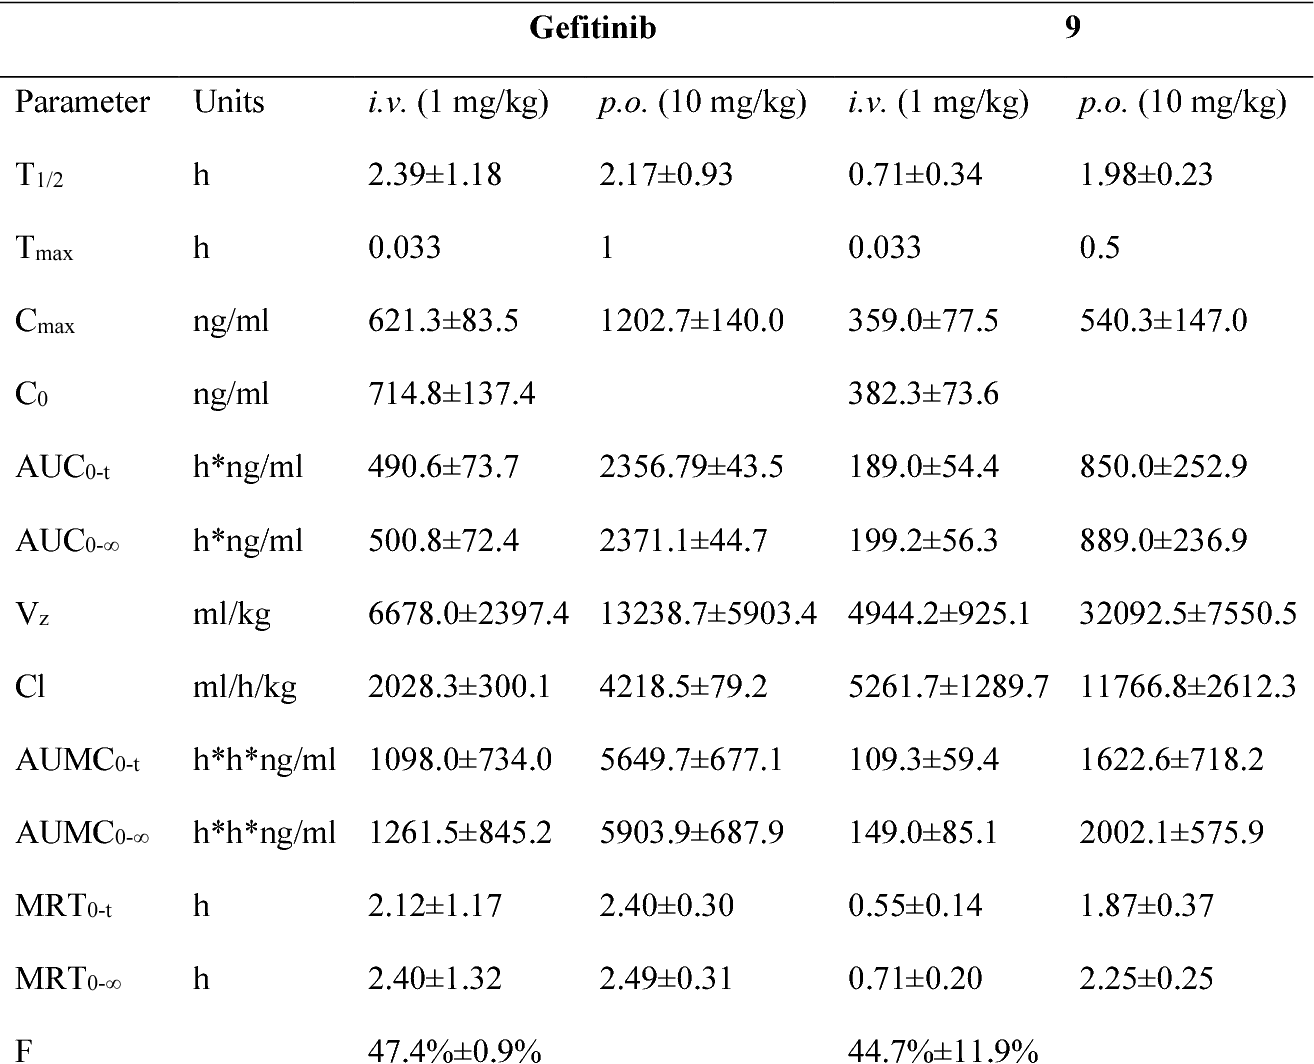 Table 2. Main pharmacokinetic parameters of 9.